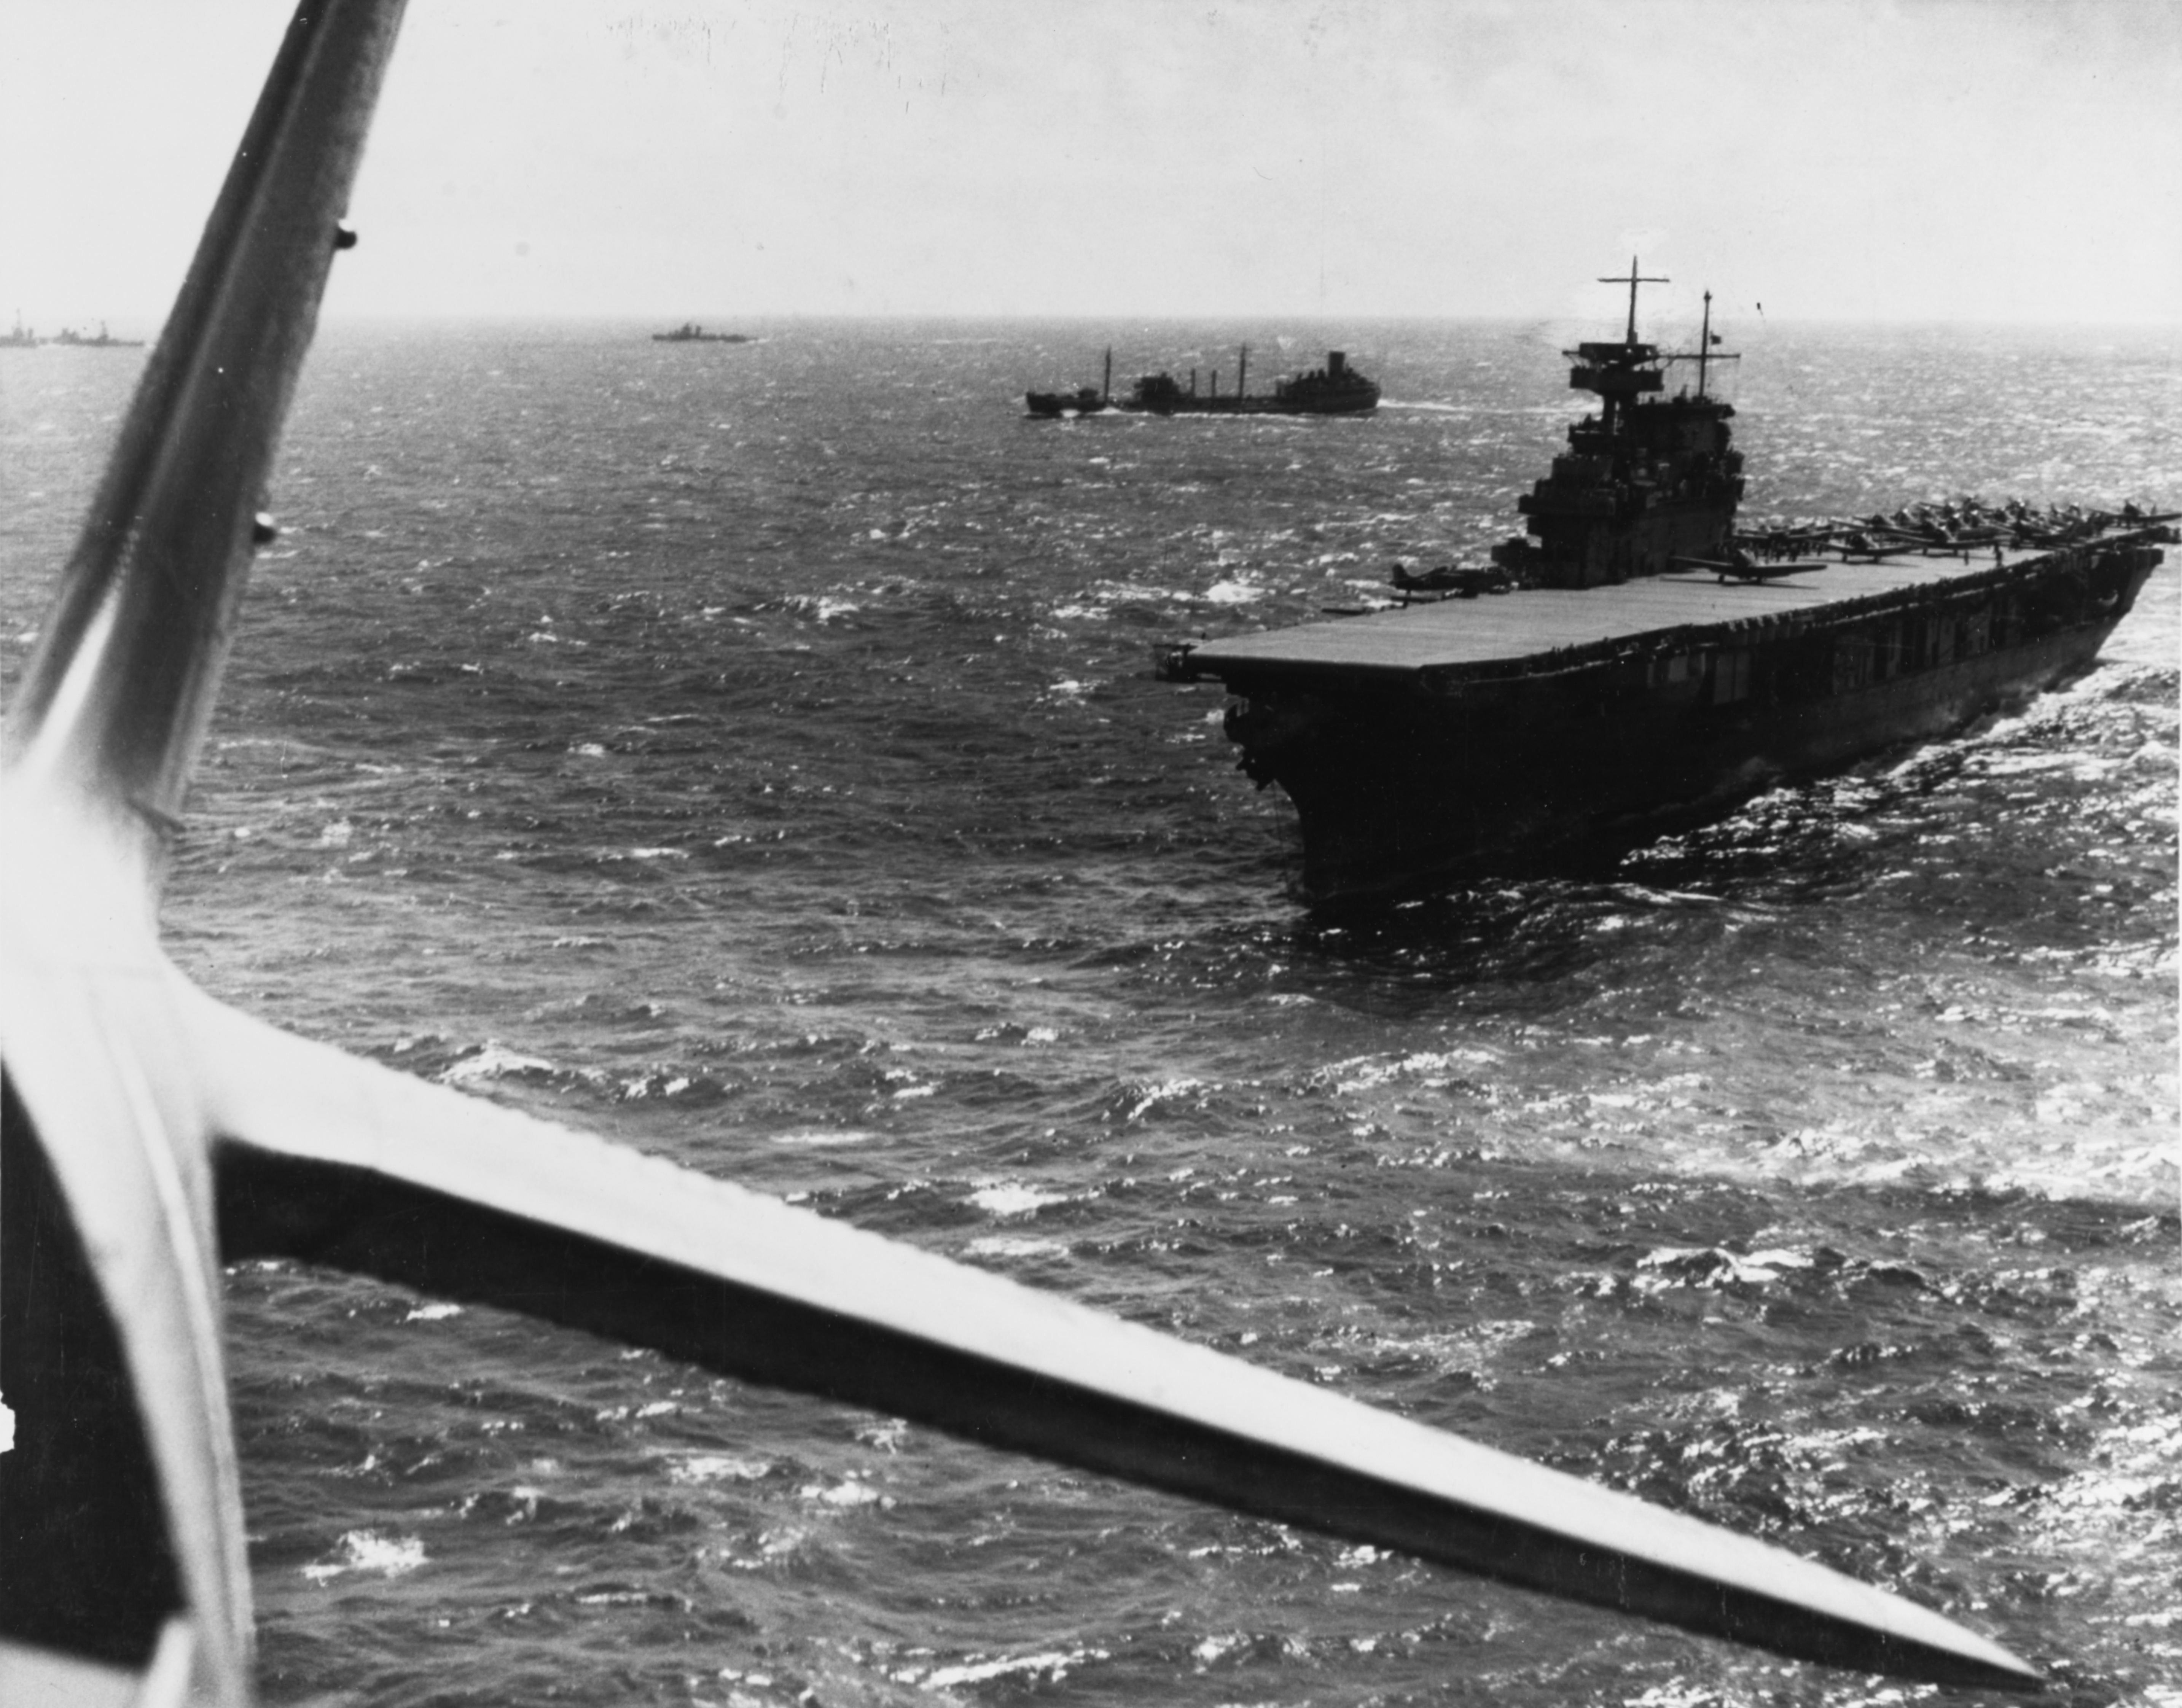 File:USS Yorktown (CV-5) during the Battle of the Coral Sea, April 1942.jpg